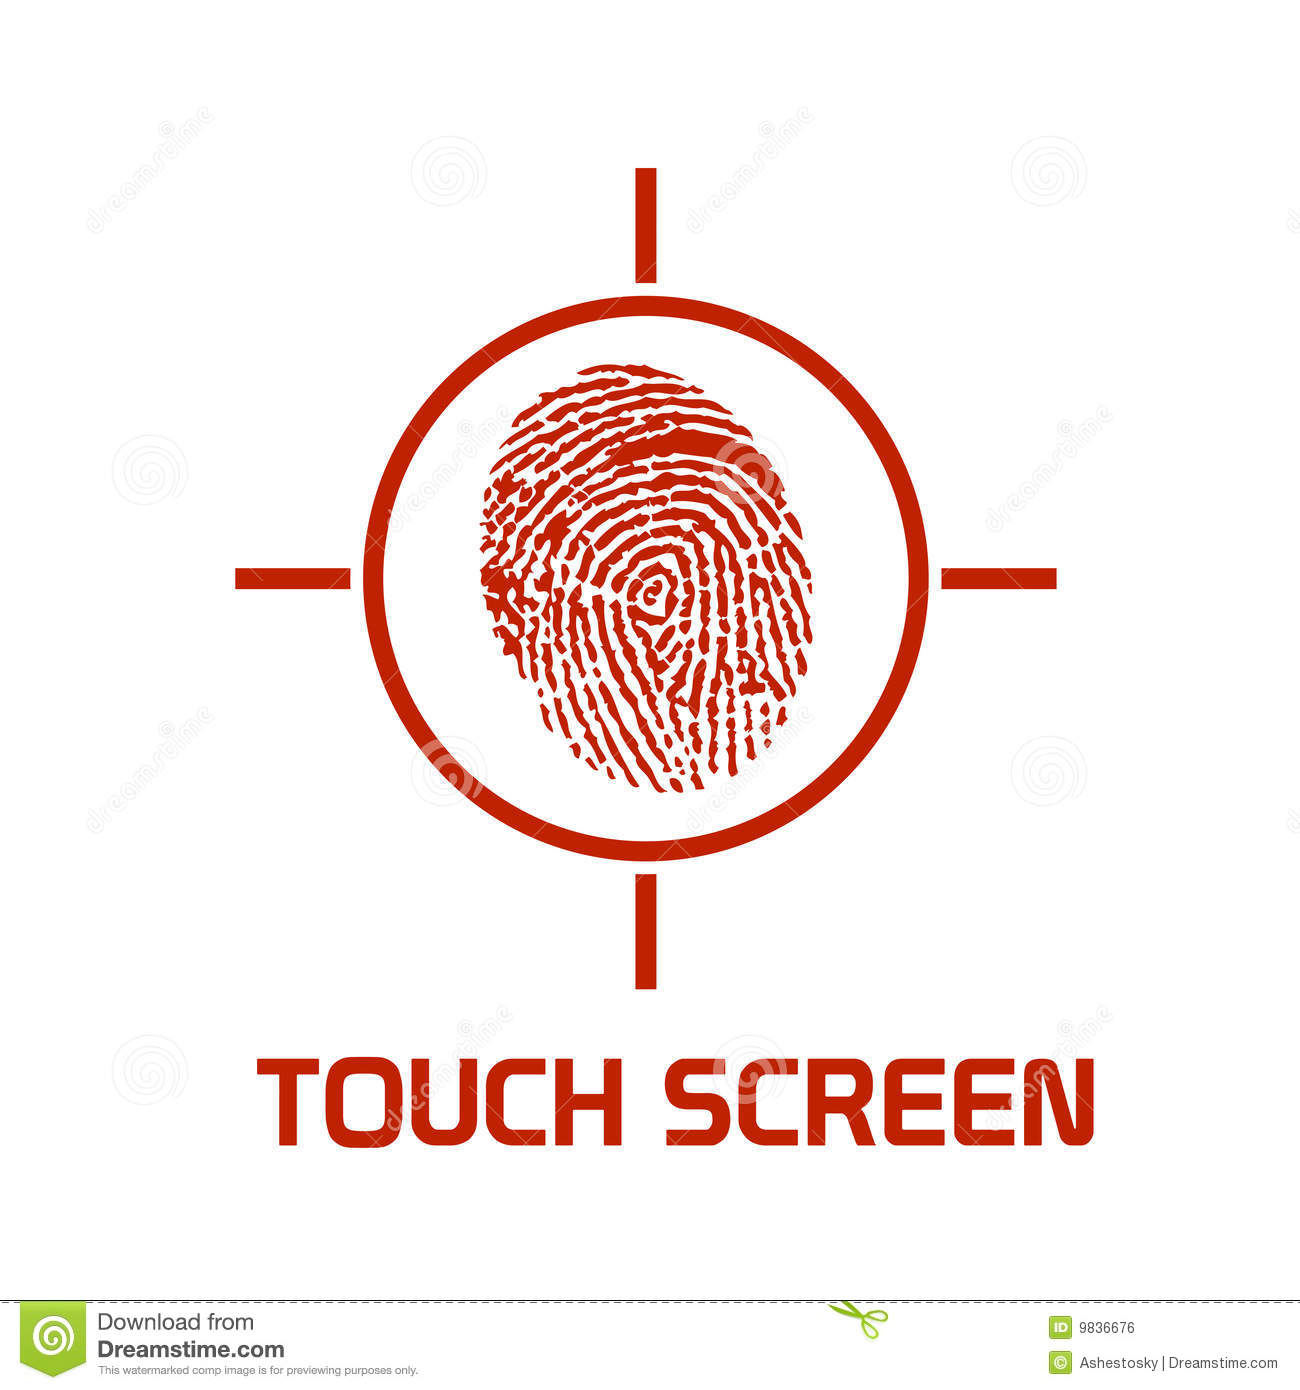 Touch bionics stock symbol gallery symbol and sign ideas touch stock illustrations 95267 touch stock illustrations touch screen enhanced symbol vector illustration of touch screen buycottarizona Choice Image